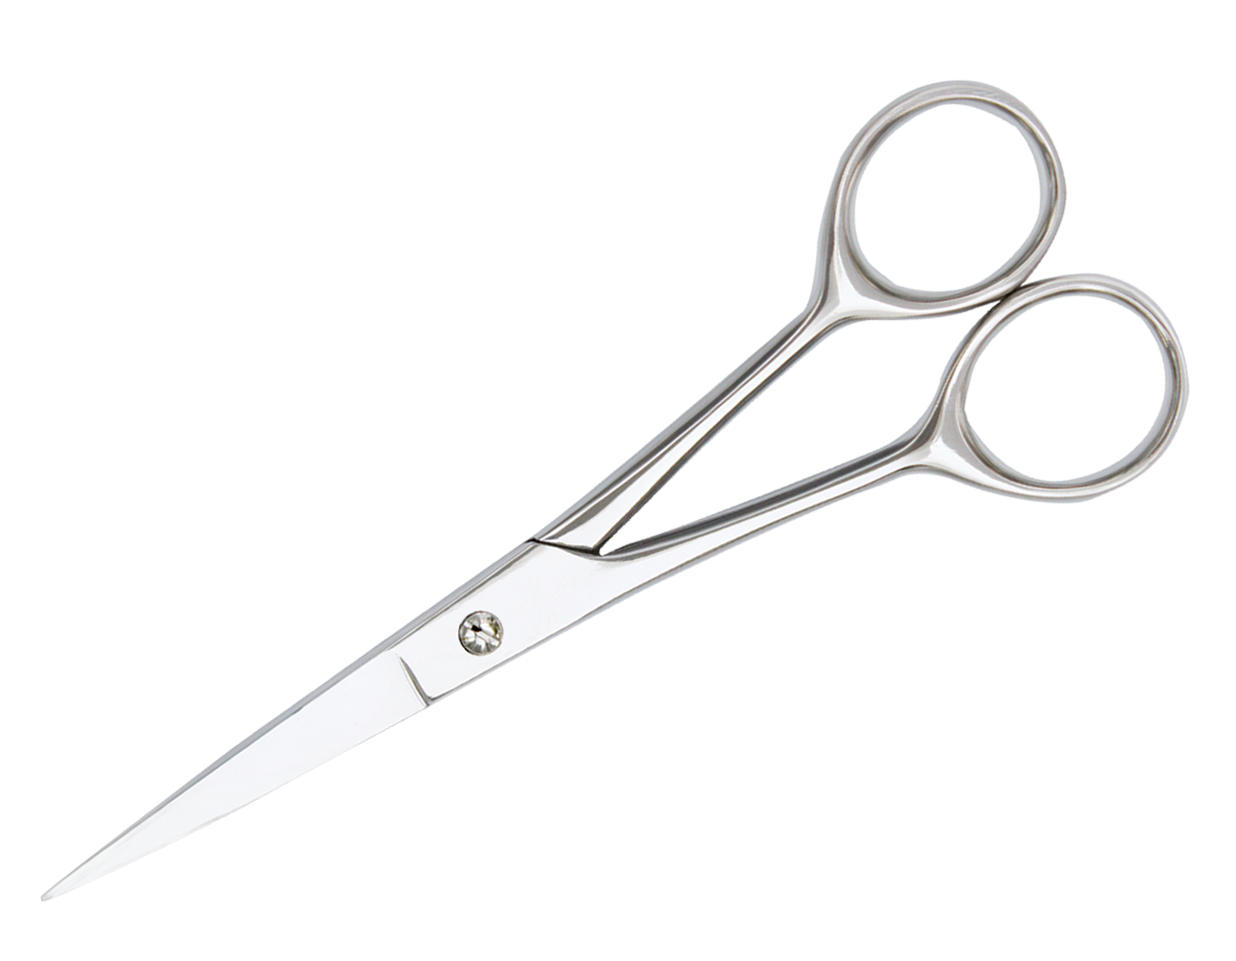 scissors PNG image - PNG Hairdressing Scissors